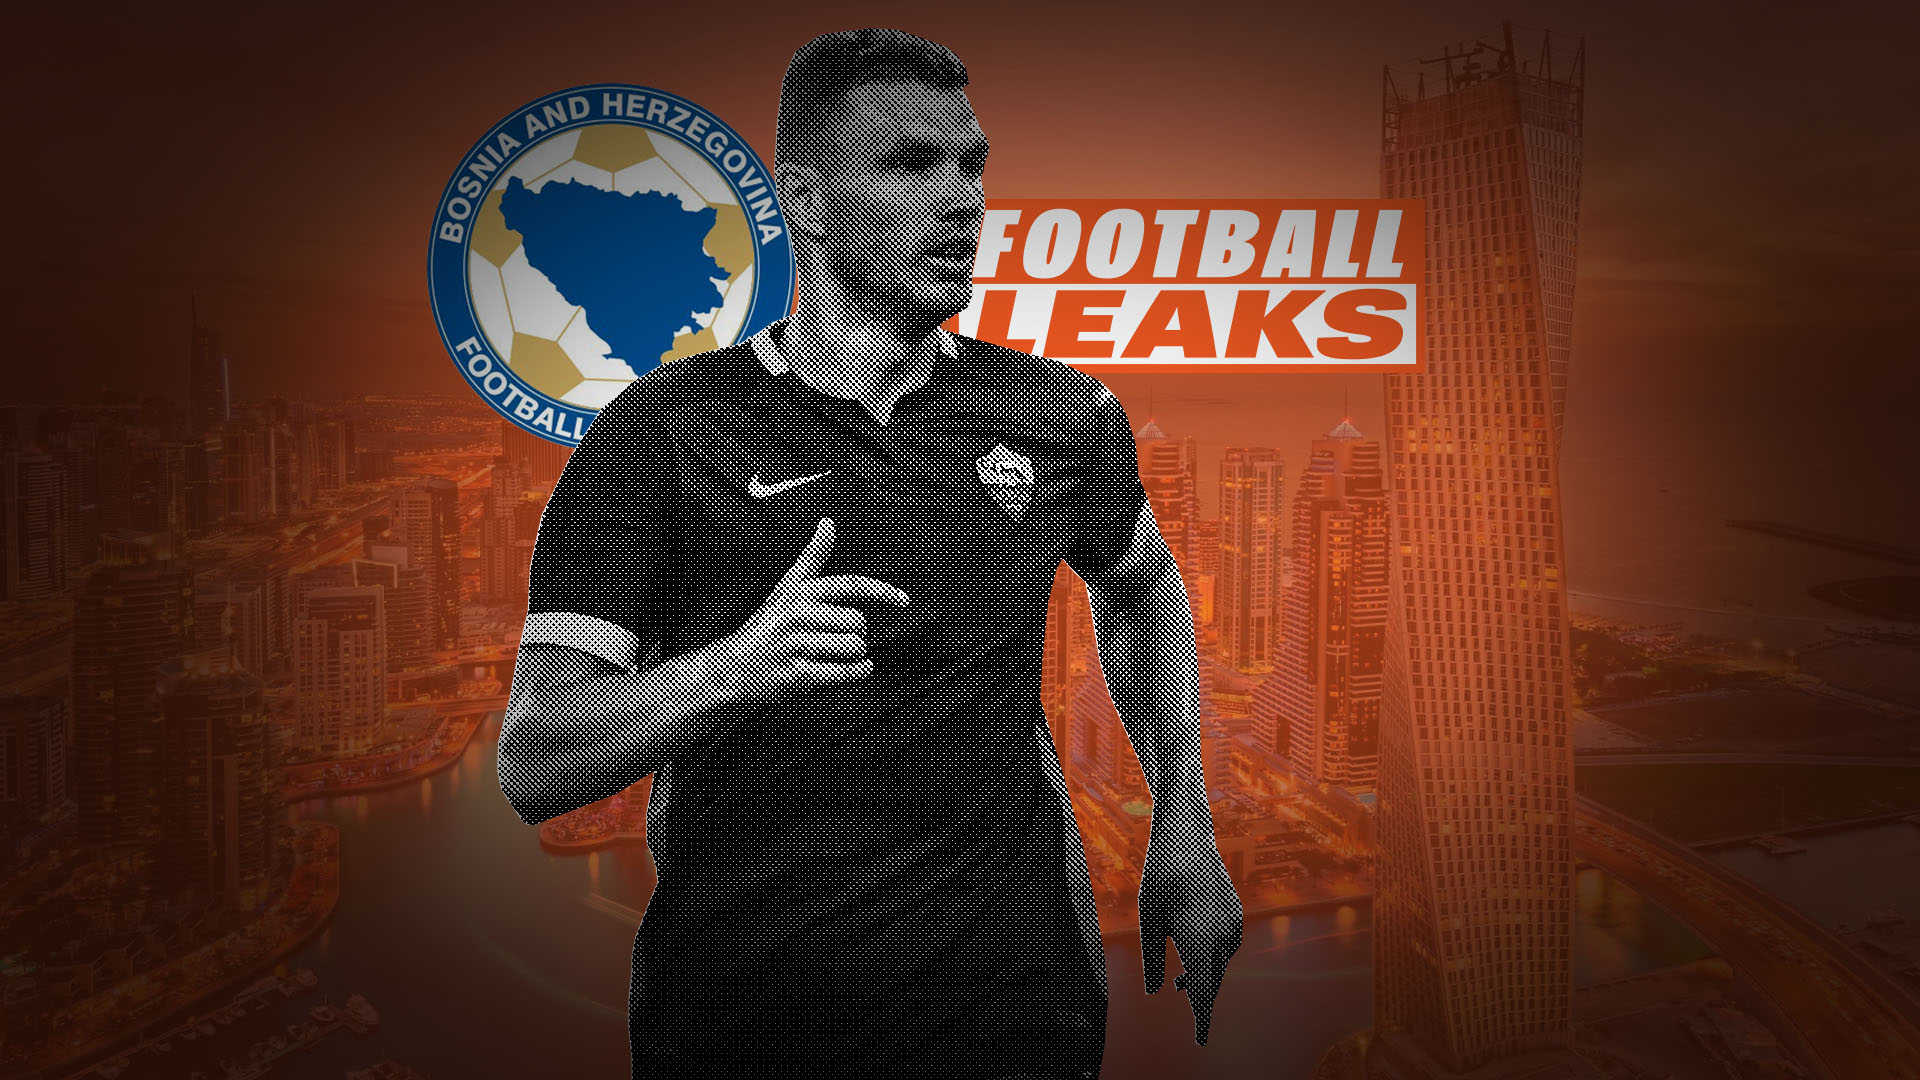 FOOTBALL LEAKS Edin Džeko's secret 3.5 million euro funds in the Emirates